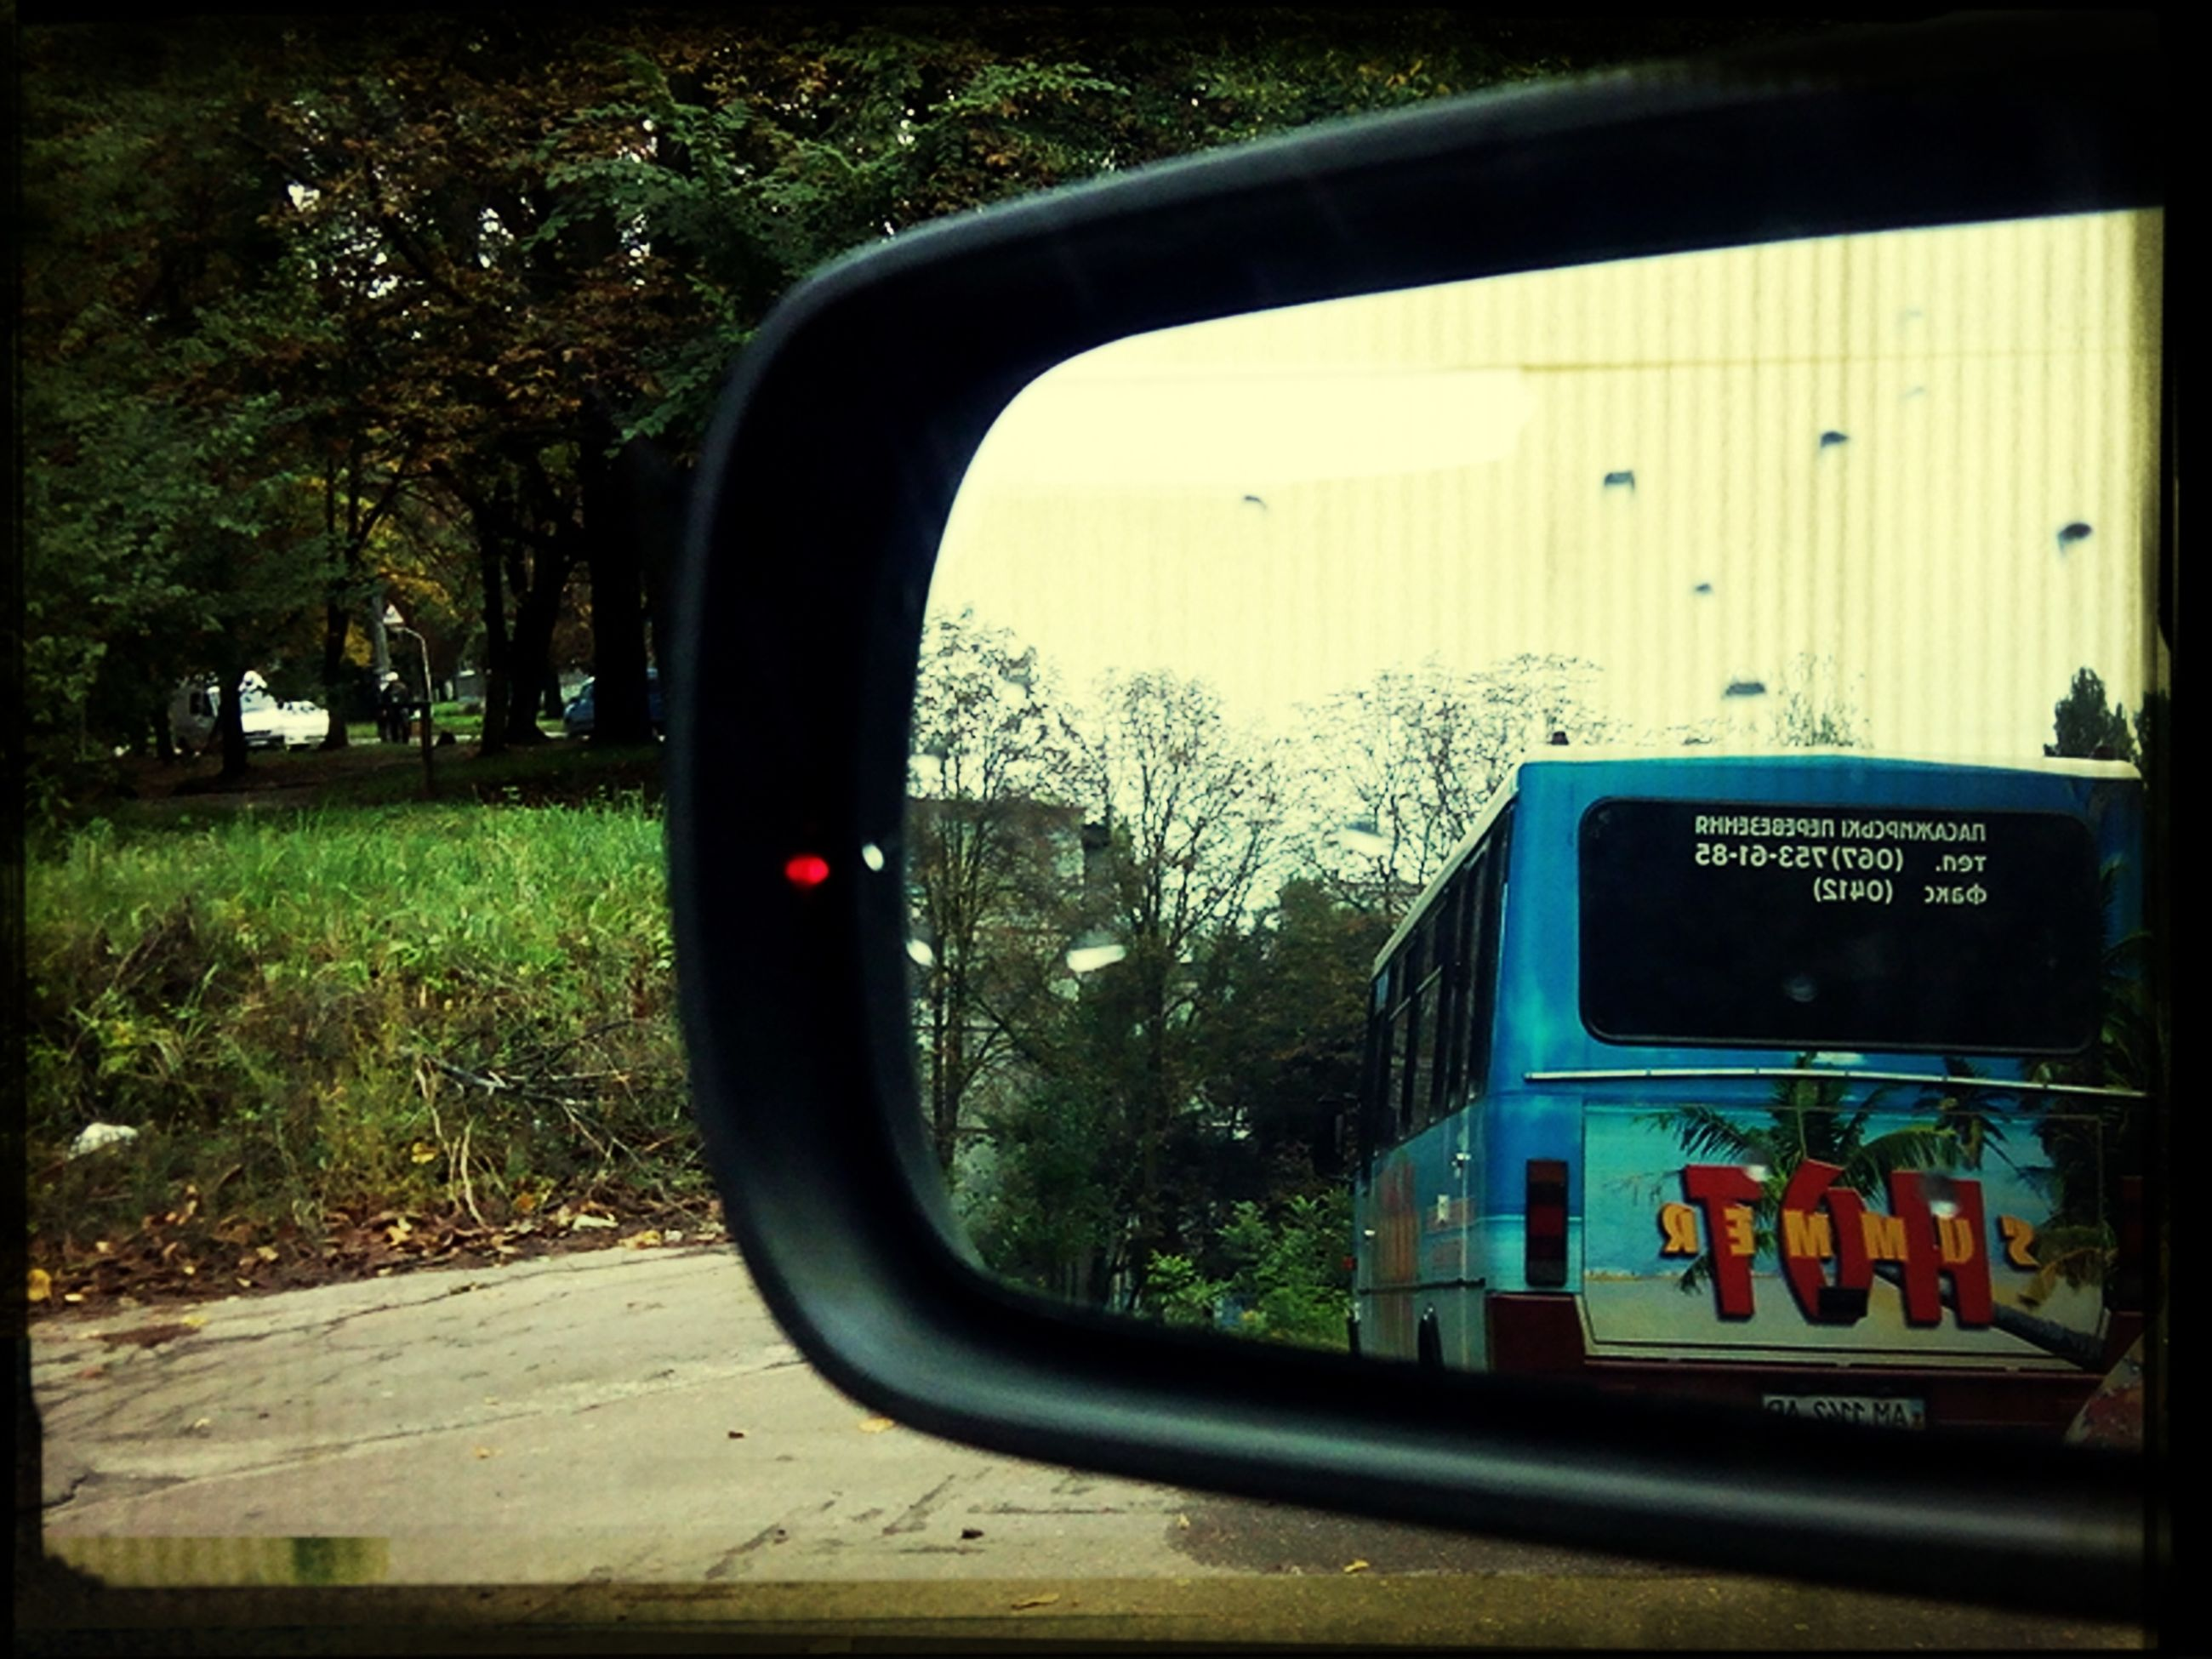 transfer print, transportation, land vehicle, mode of transport, car, auto post production filter, communication, tree, glass - material, side-view mirror, text, road, window, day, transparent, close-up, western script, street, mirror, no people